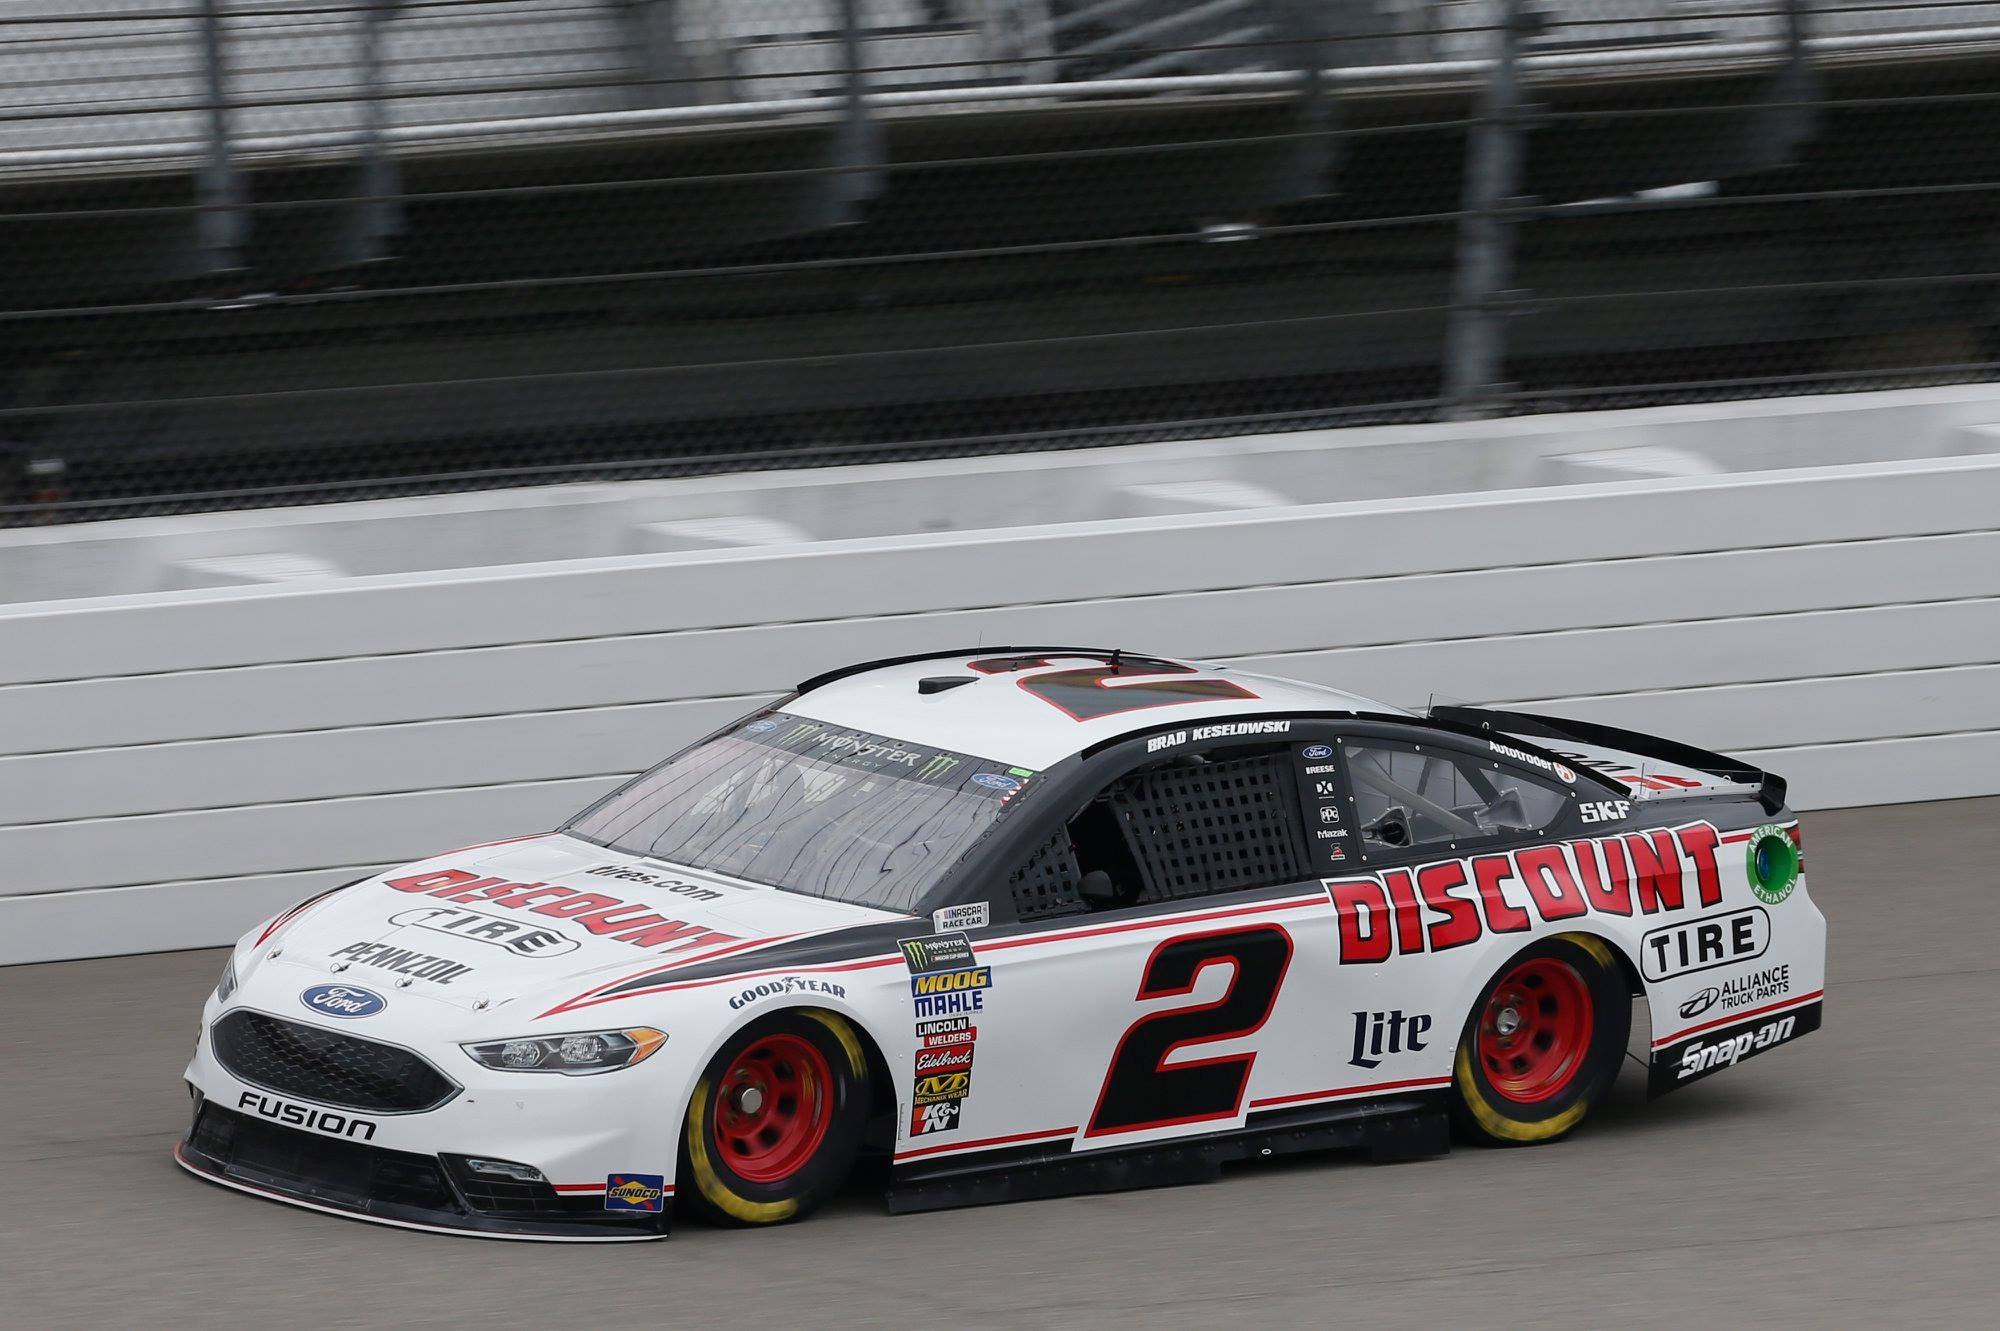 Brad Keselowski at Michigan International Speedway